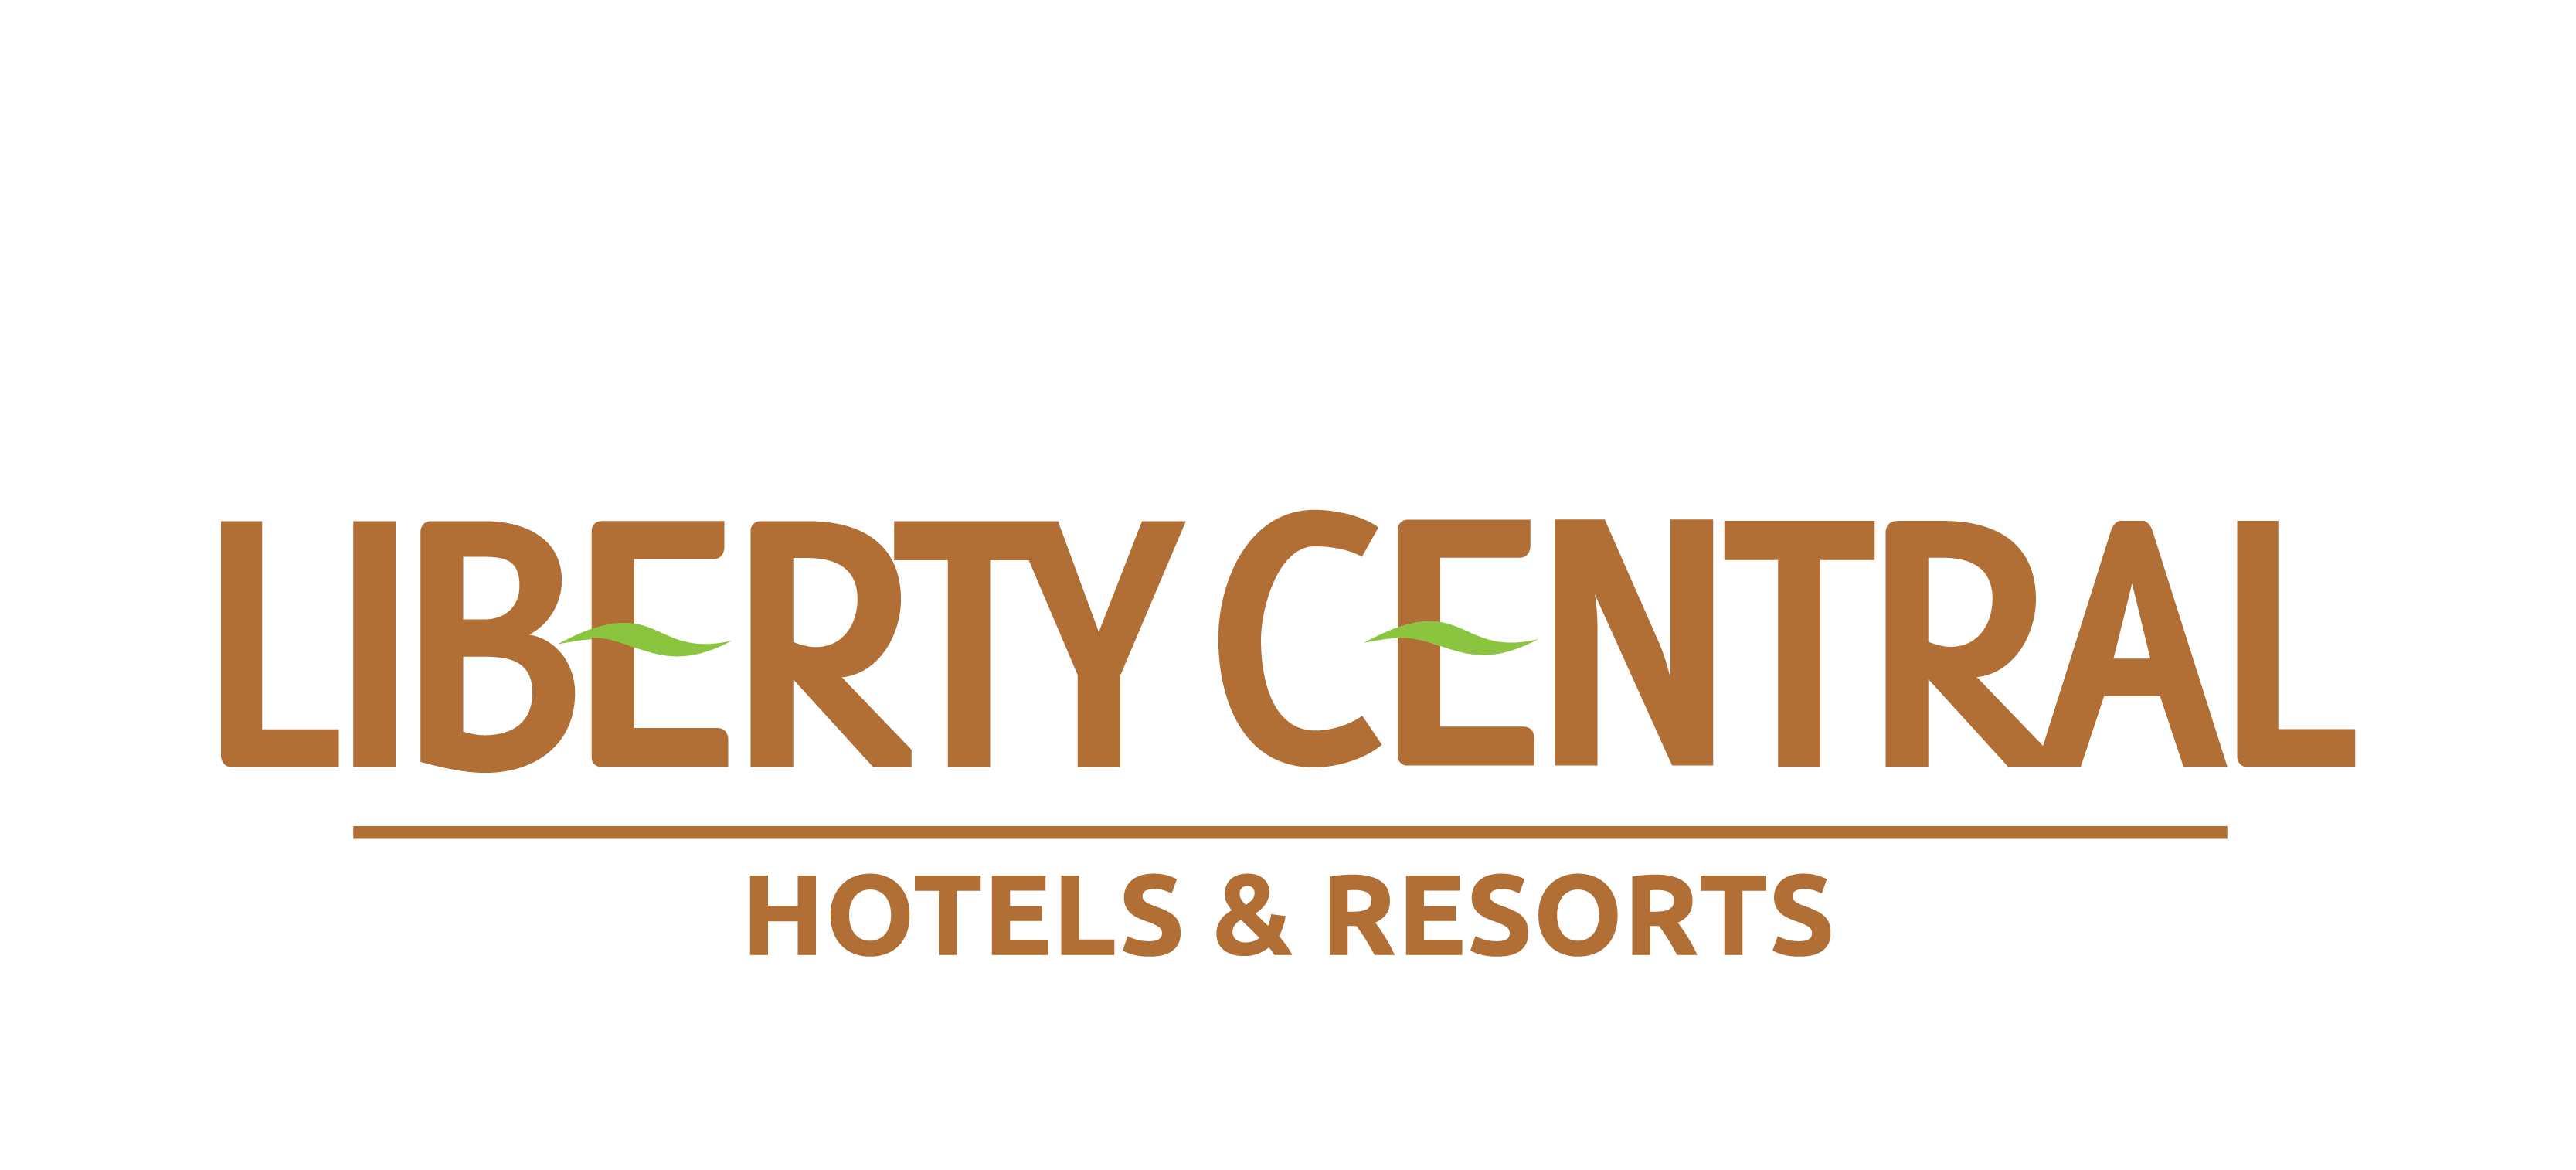 Liberty Central Hotels & Resorts